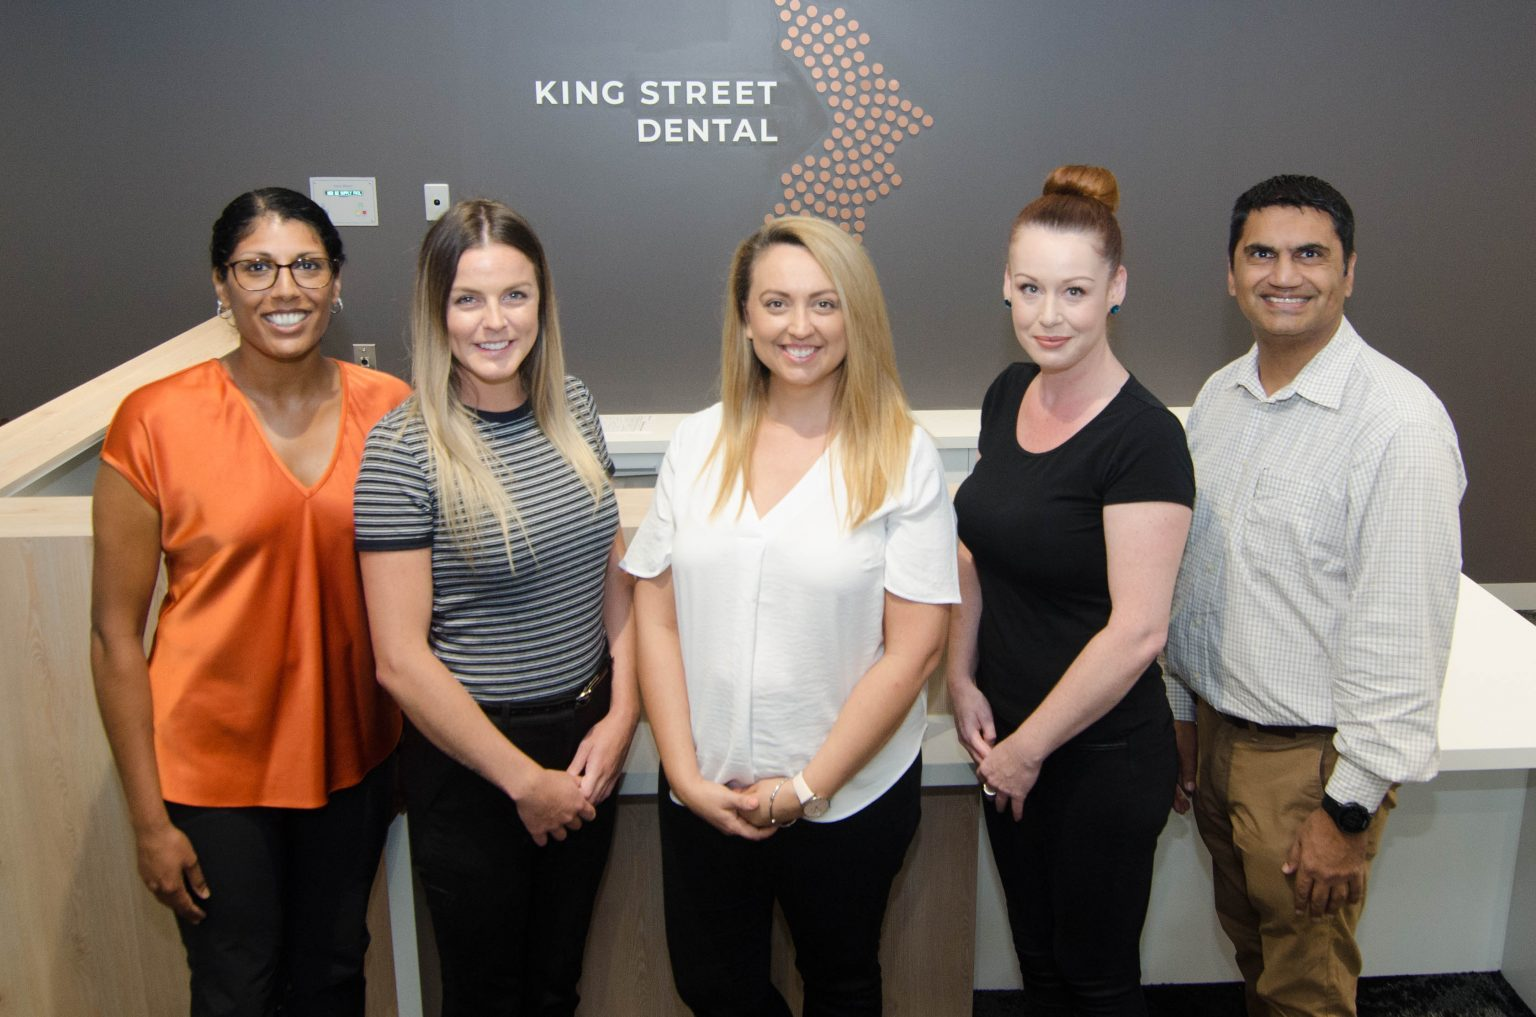 King Street Dental and Medical